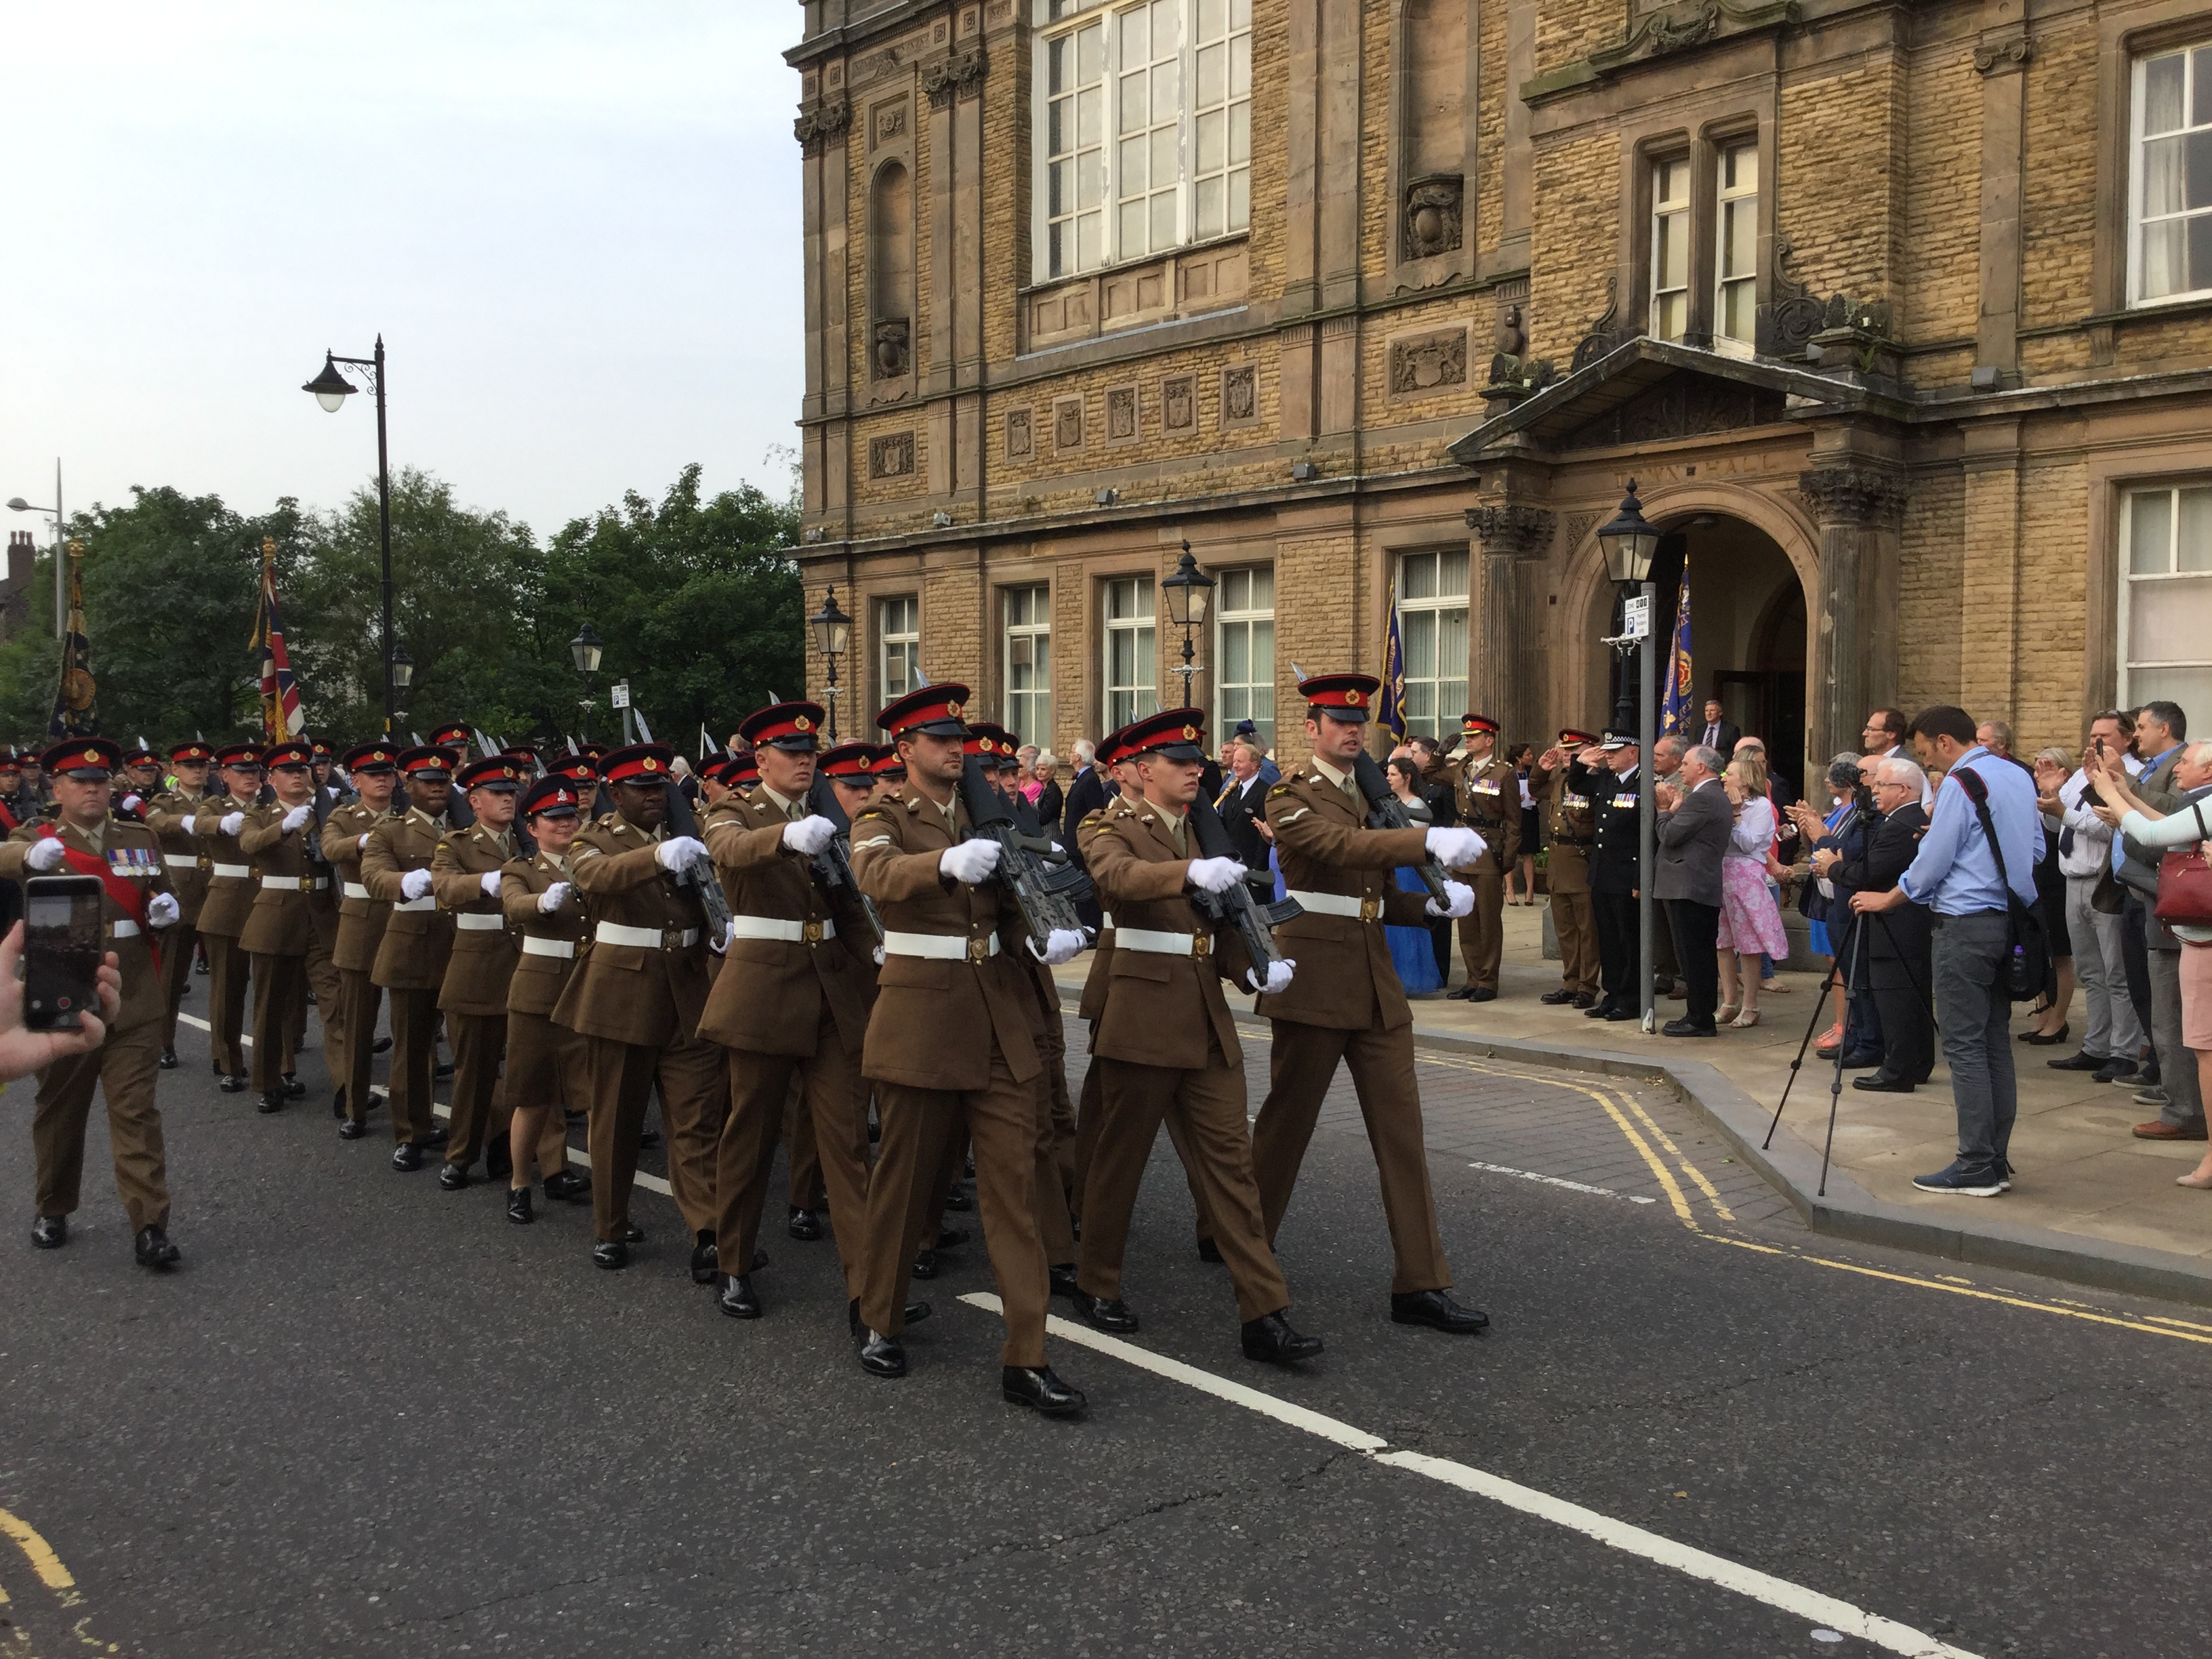 Last night Sefton Council awarded the freedom of the borough to the Duke of LancasterÂ's Regiment at Bootle Town Hall. The Regiment paraded through the streets of Bootle with colours flying, bands playing, drums beating and bayonets fixed.    The parade was followed by a civic reception where the...